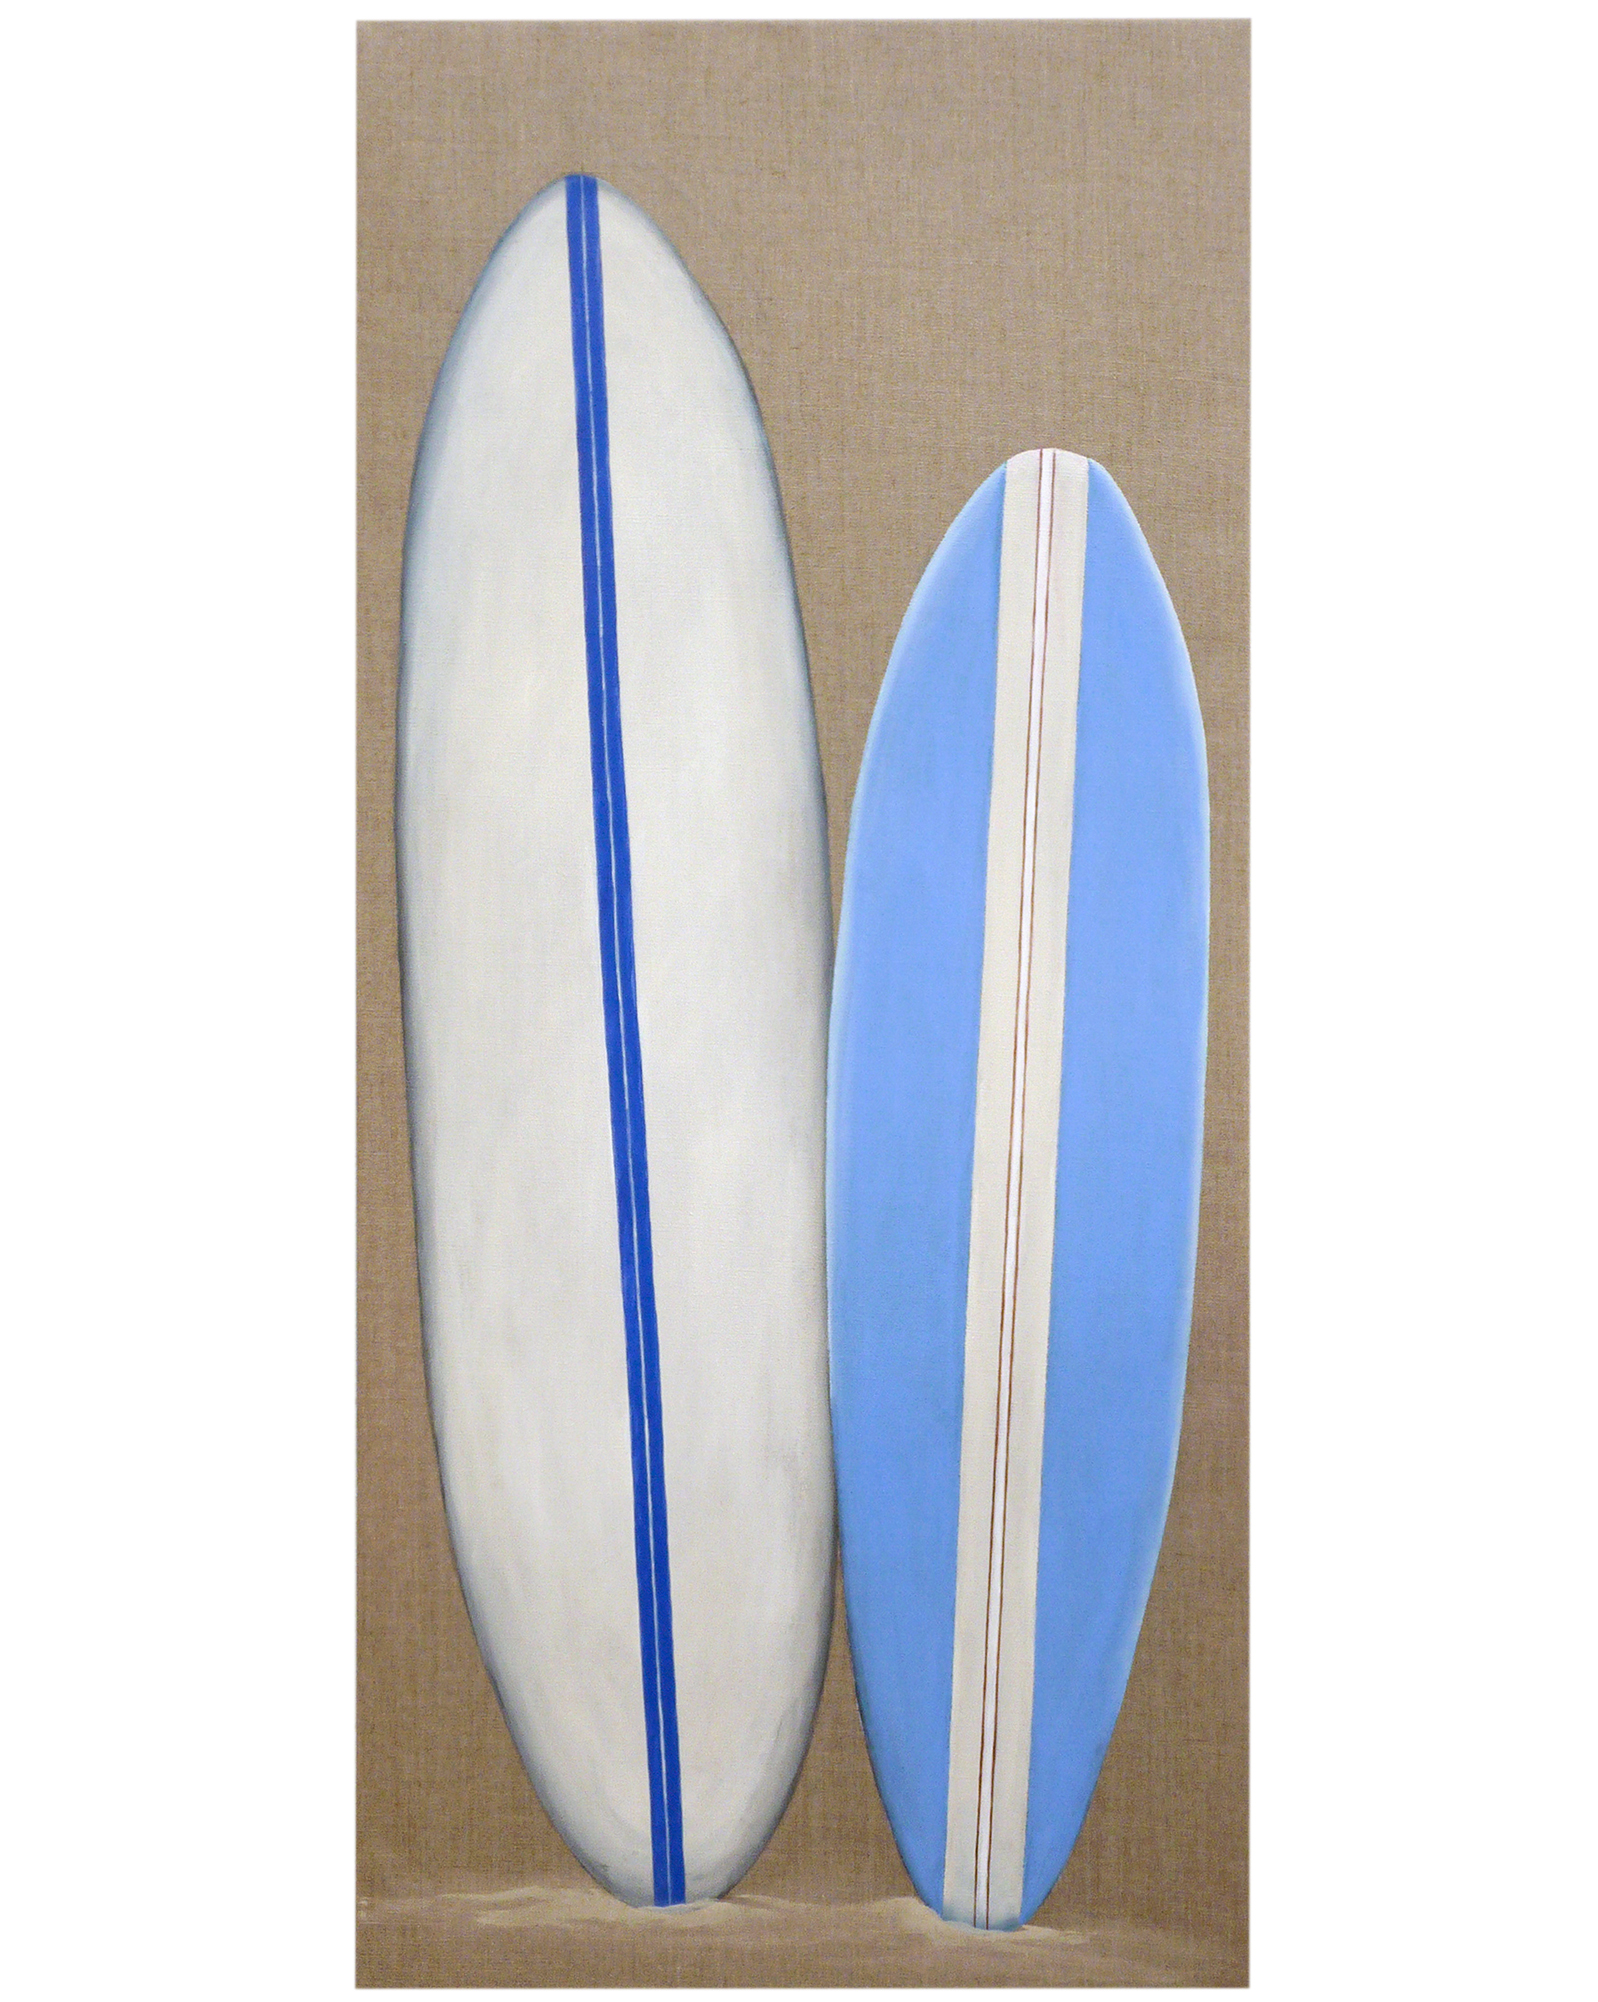 "Pair of Surfboards on Linen"" by Carol Saxe,"